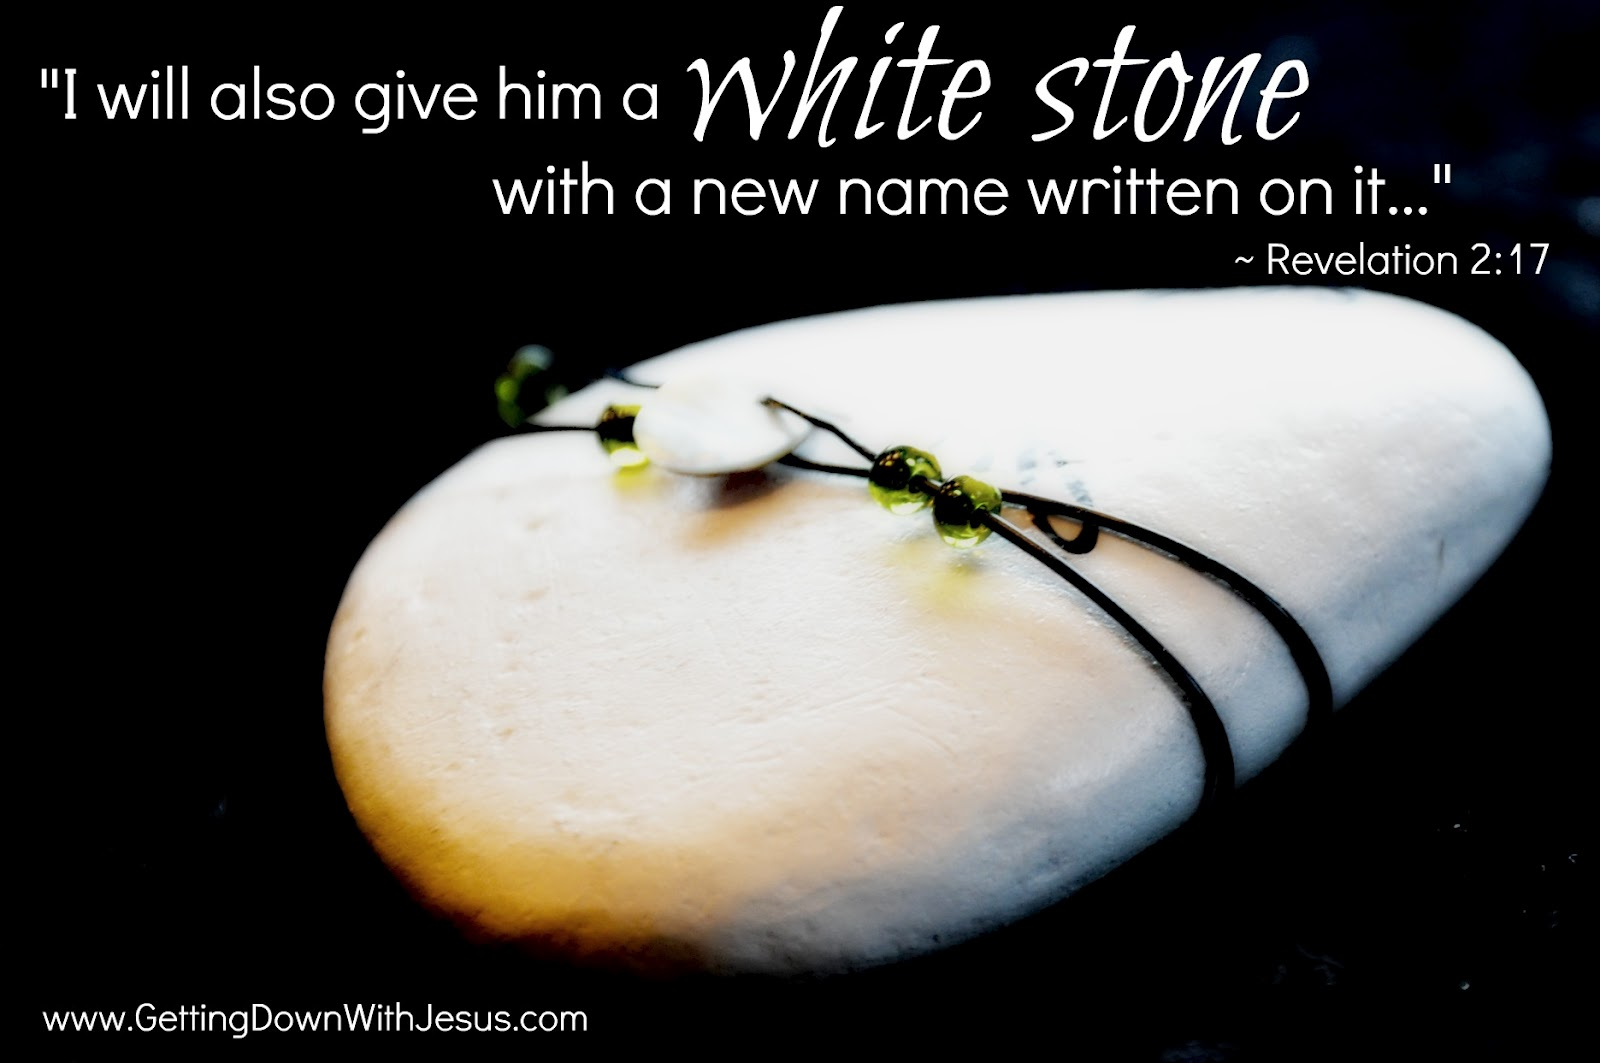 new name and white stone